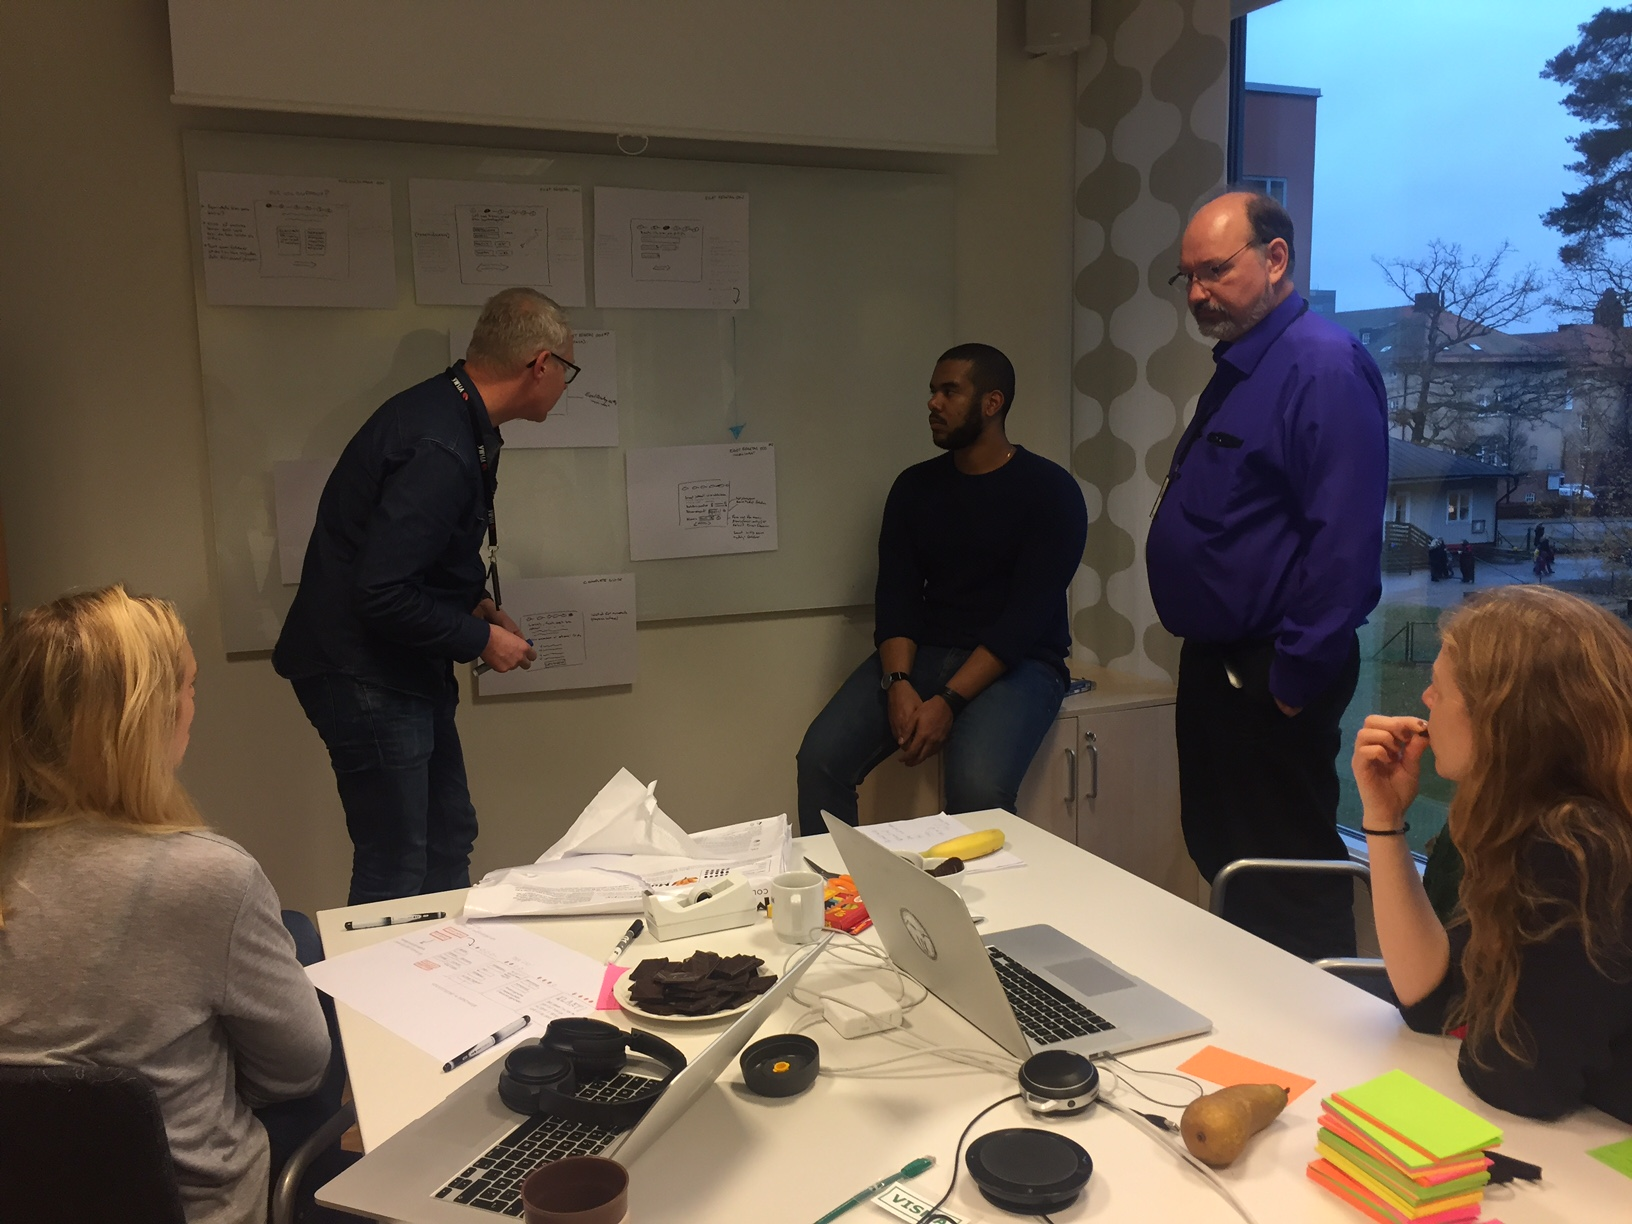 People in workshop during Visma UX Marathon 2016